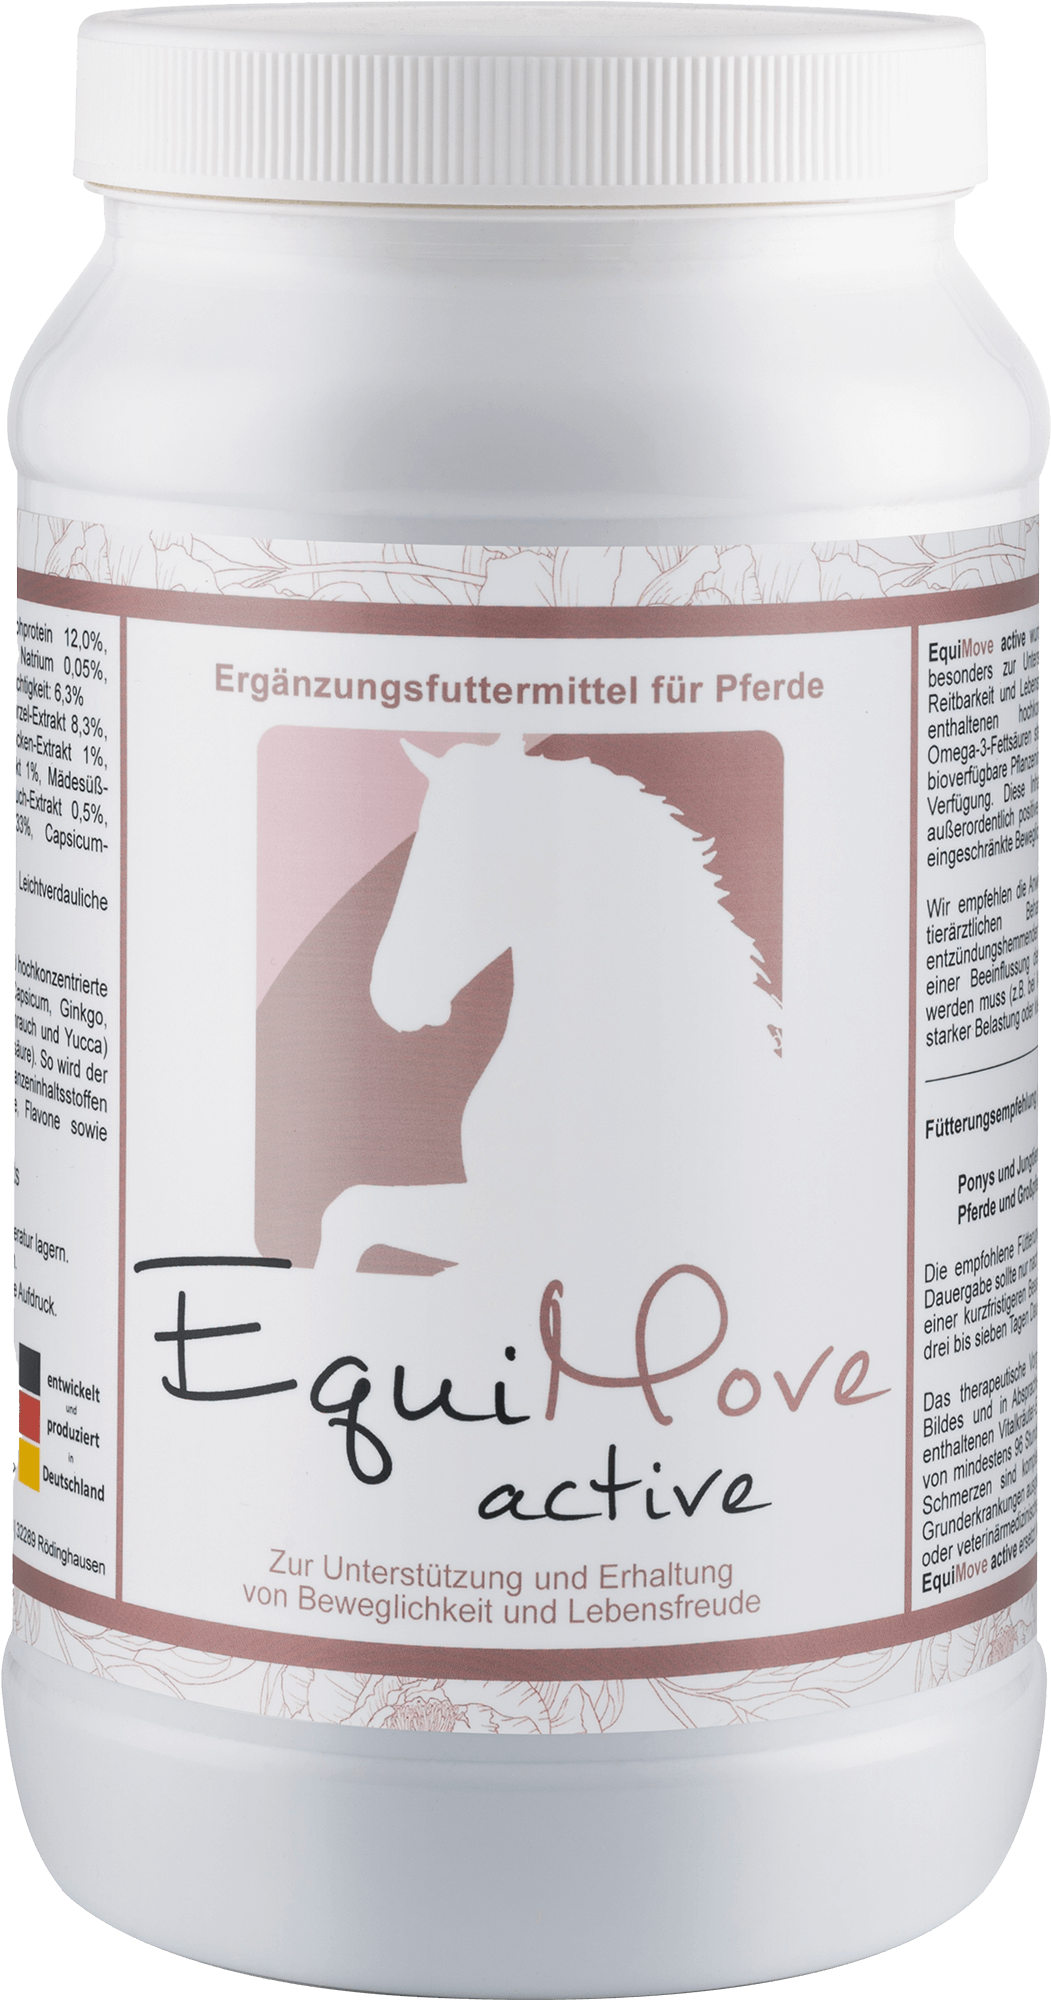 EquiMove active